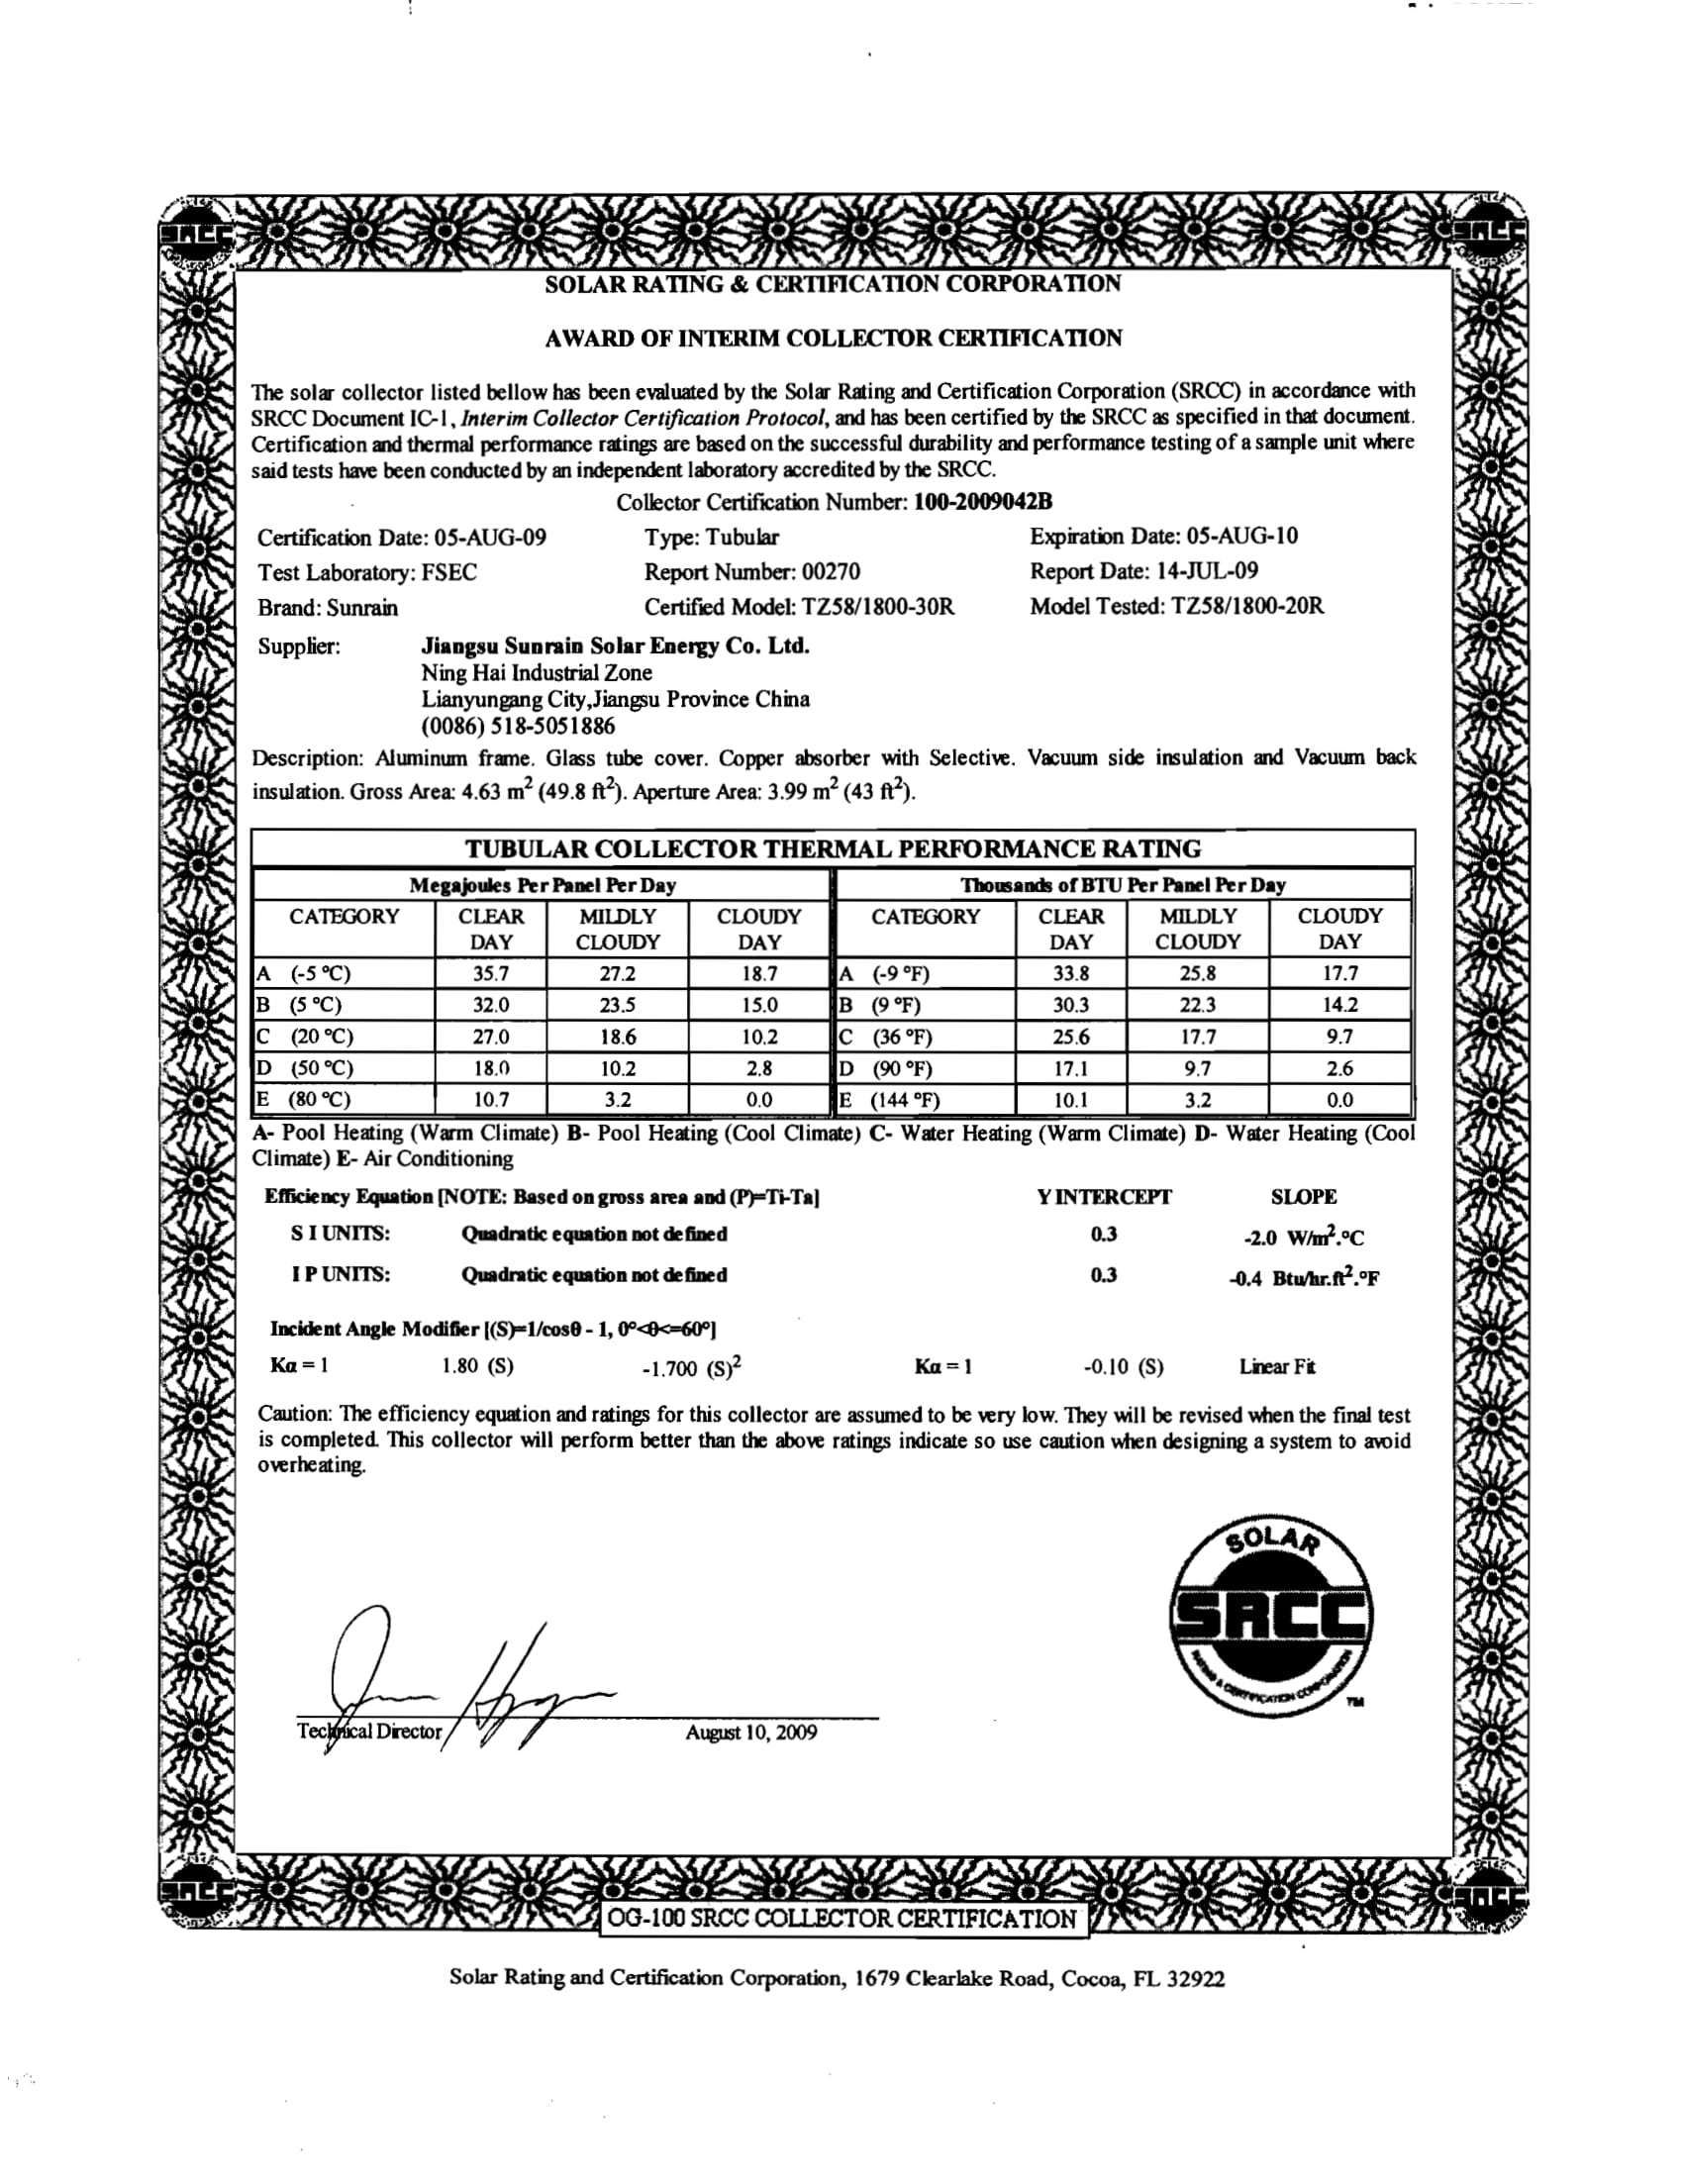 SRCC TZ58 1800 20R Certification Dec 2013